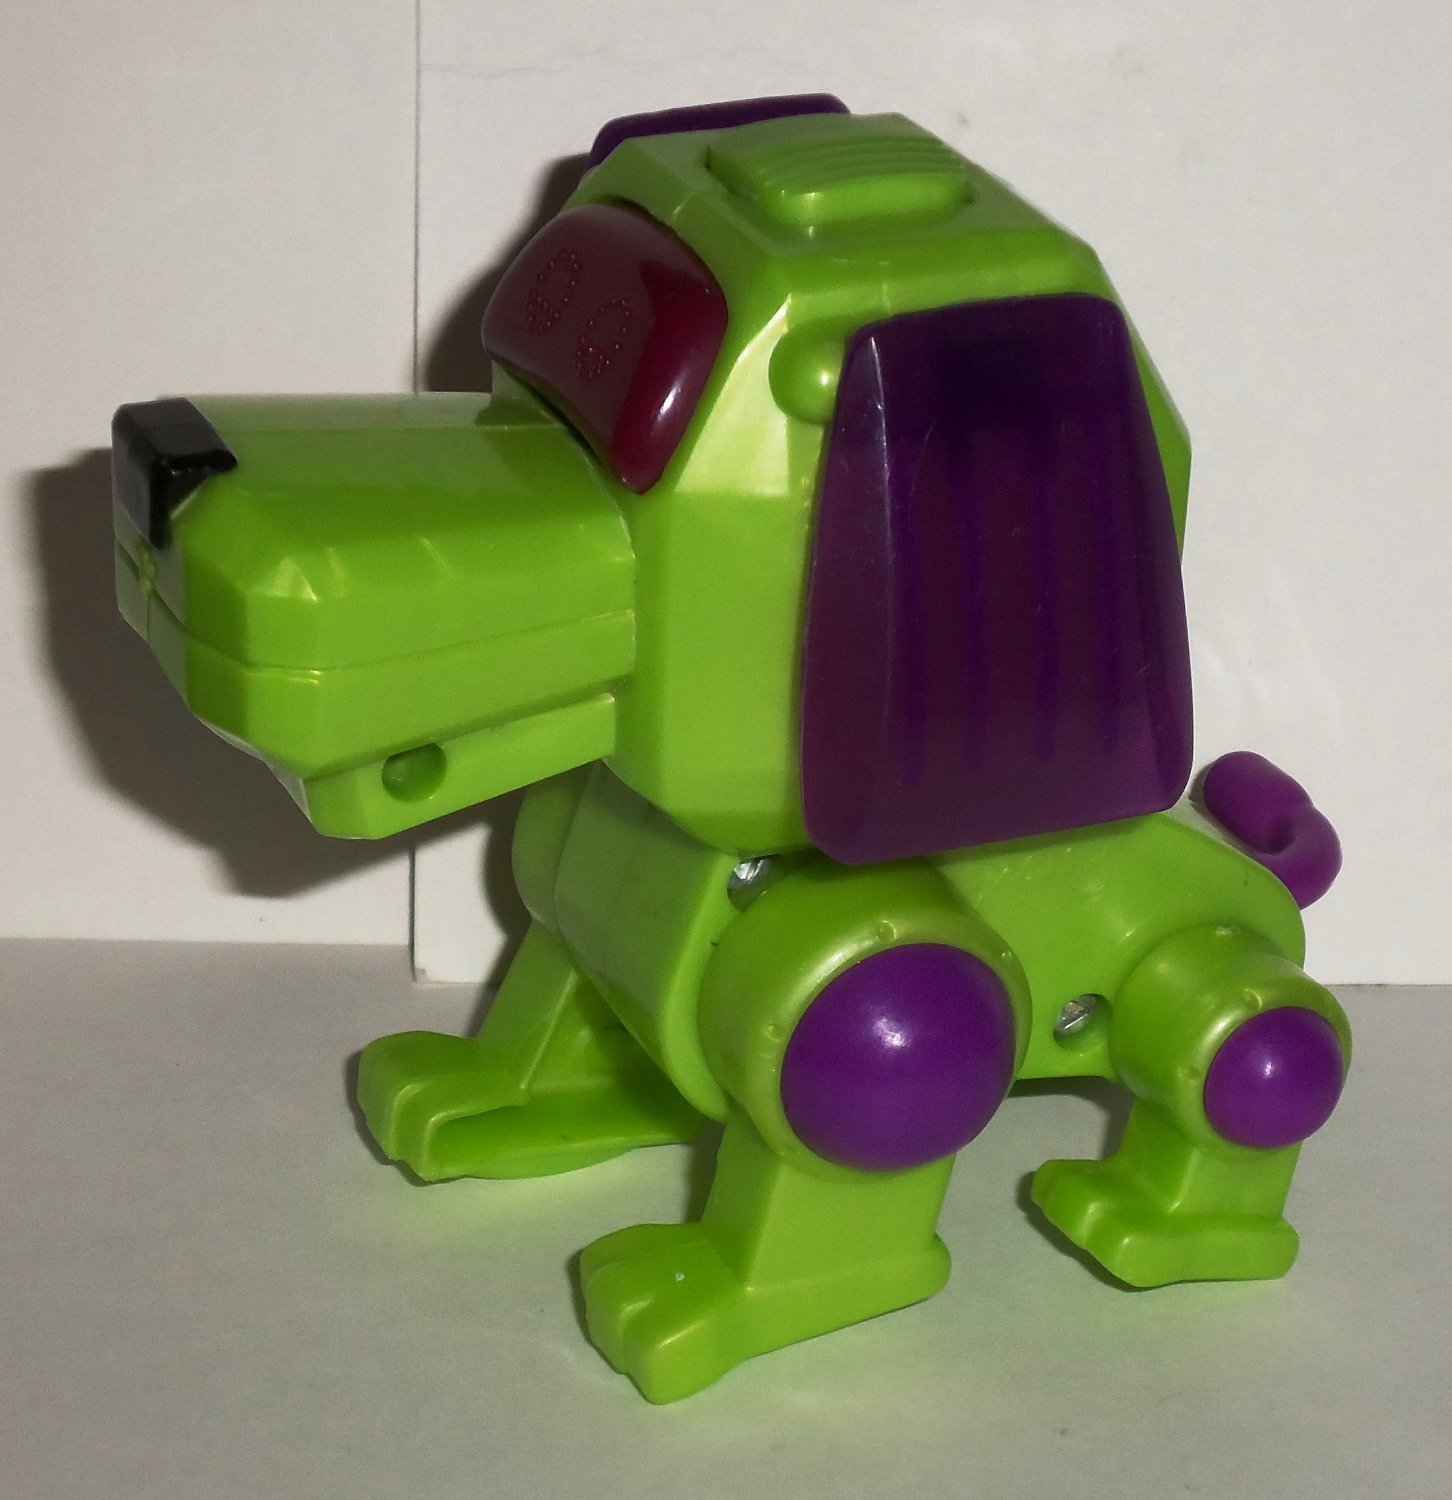 Robot Dog Toy For Kids